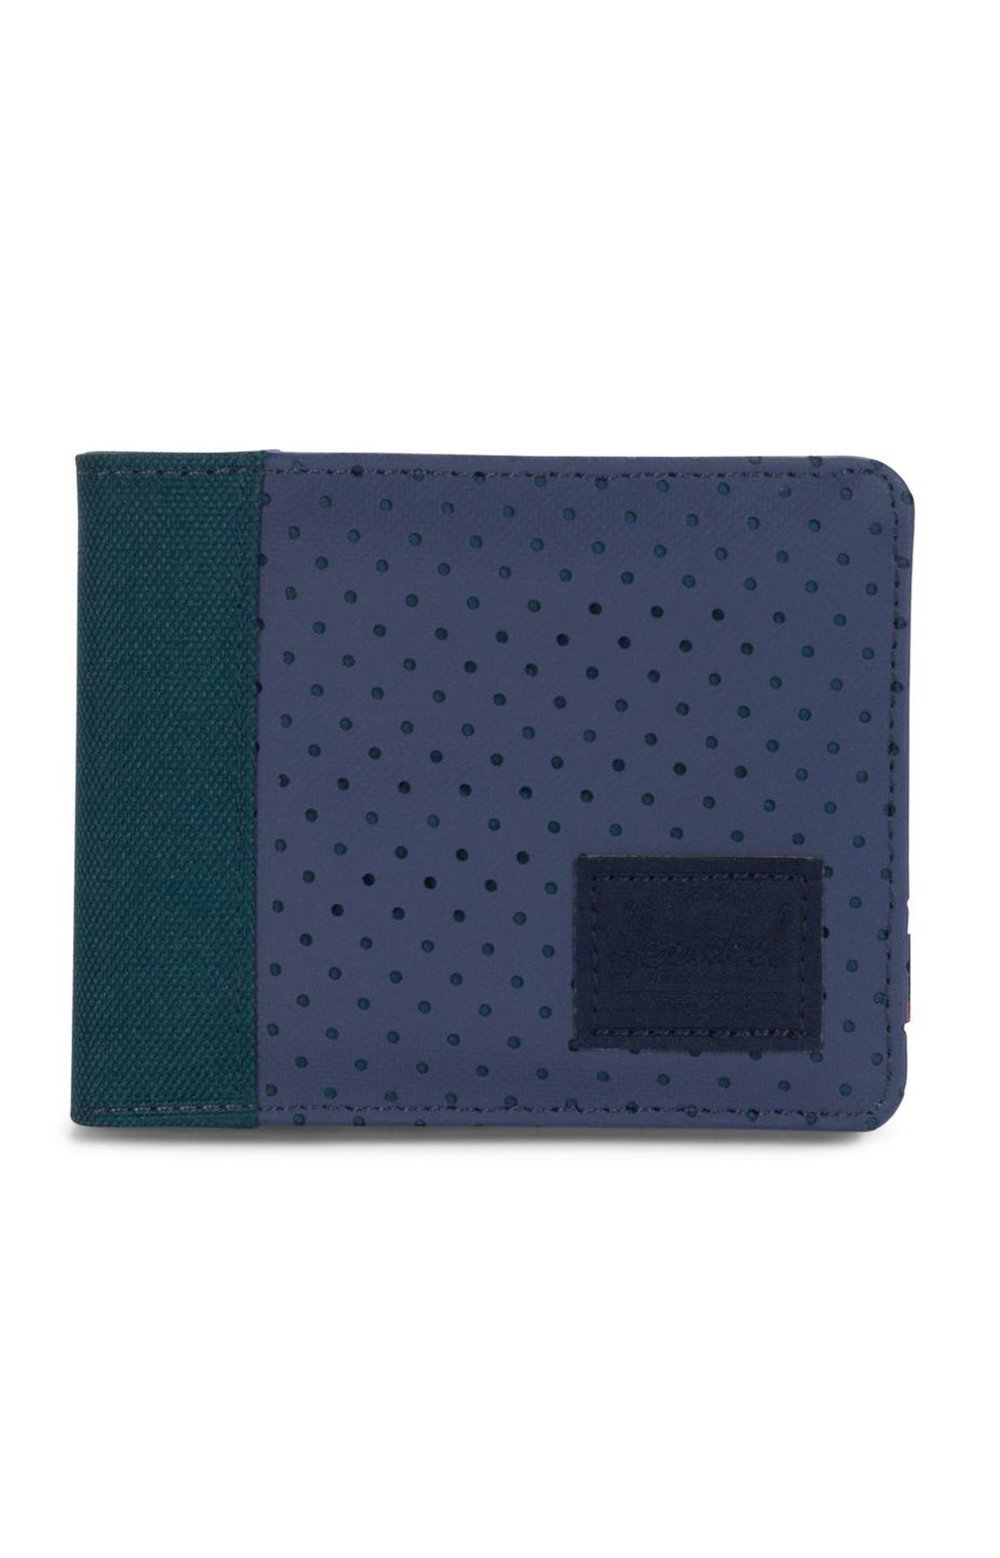 Edward Wallet - Dark Teal/Peacoat